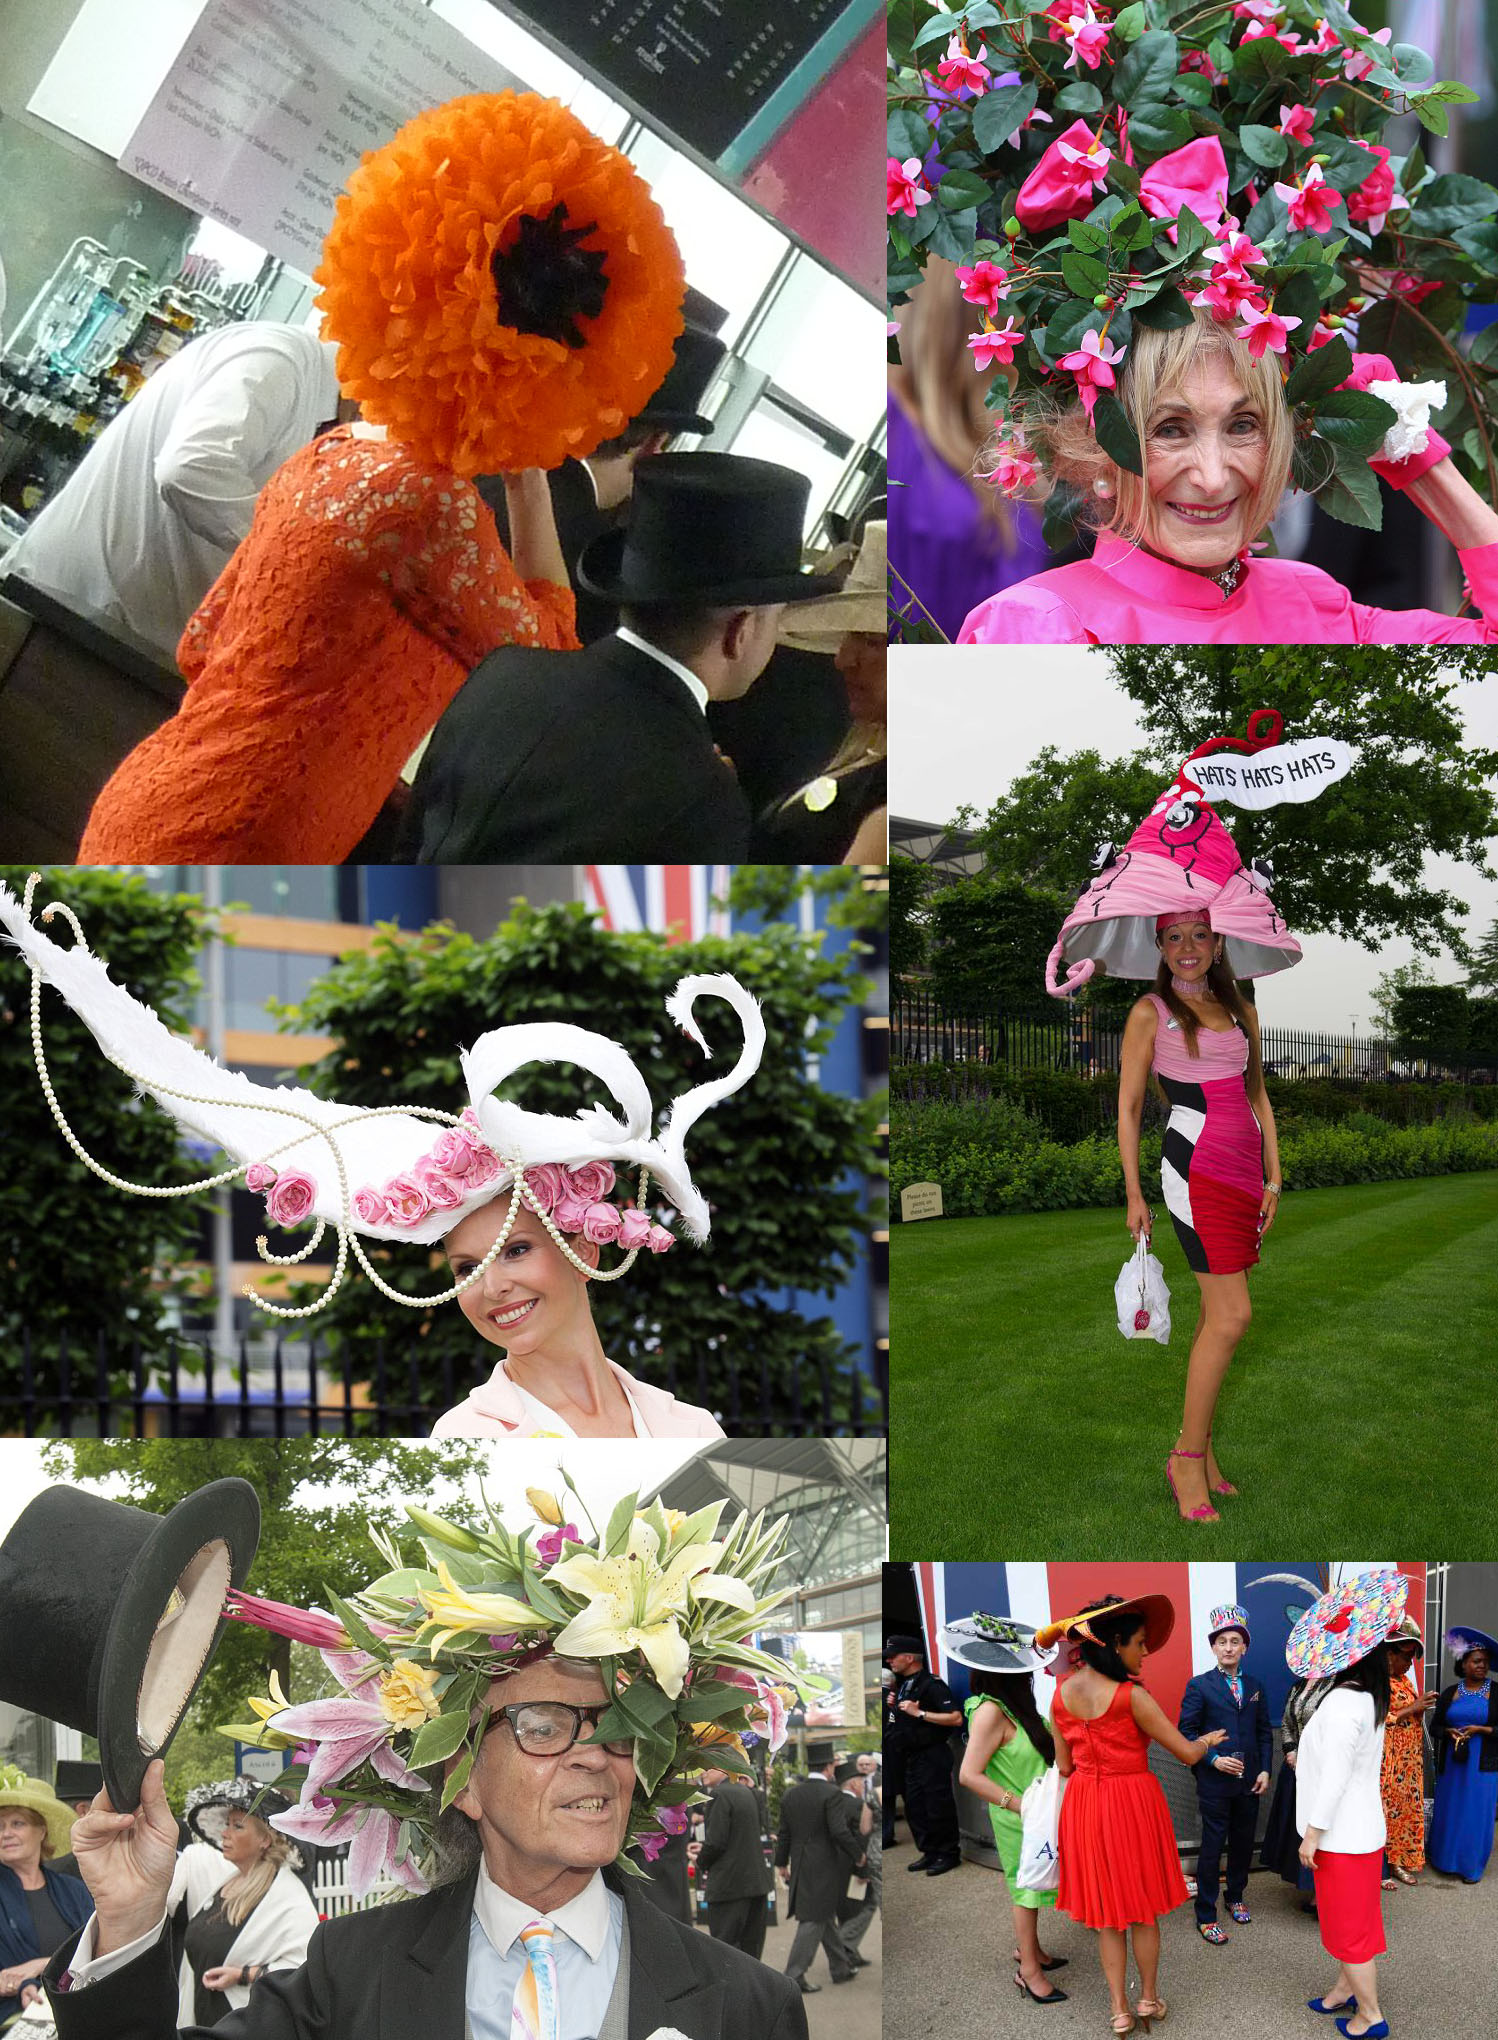 A selection of crazy millinery sported on Tuesday. Photos taken from Daily Mail, Metro and getreading.co.uk.